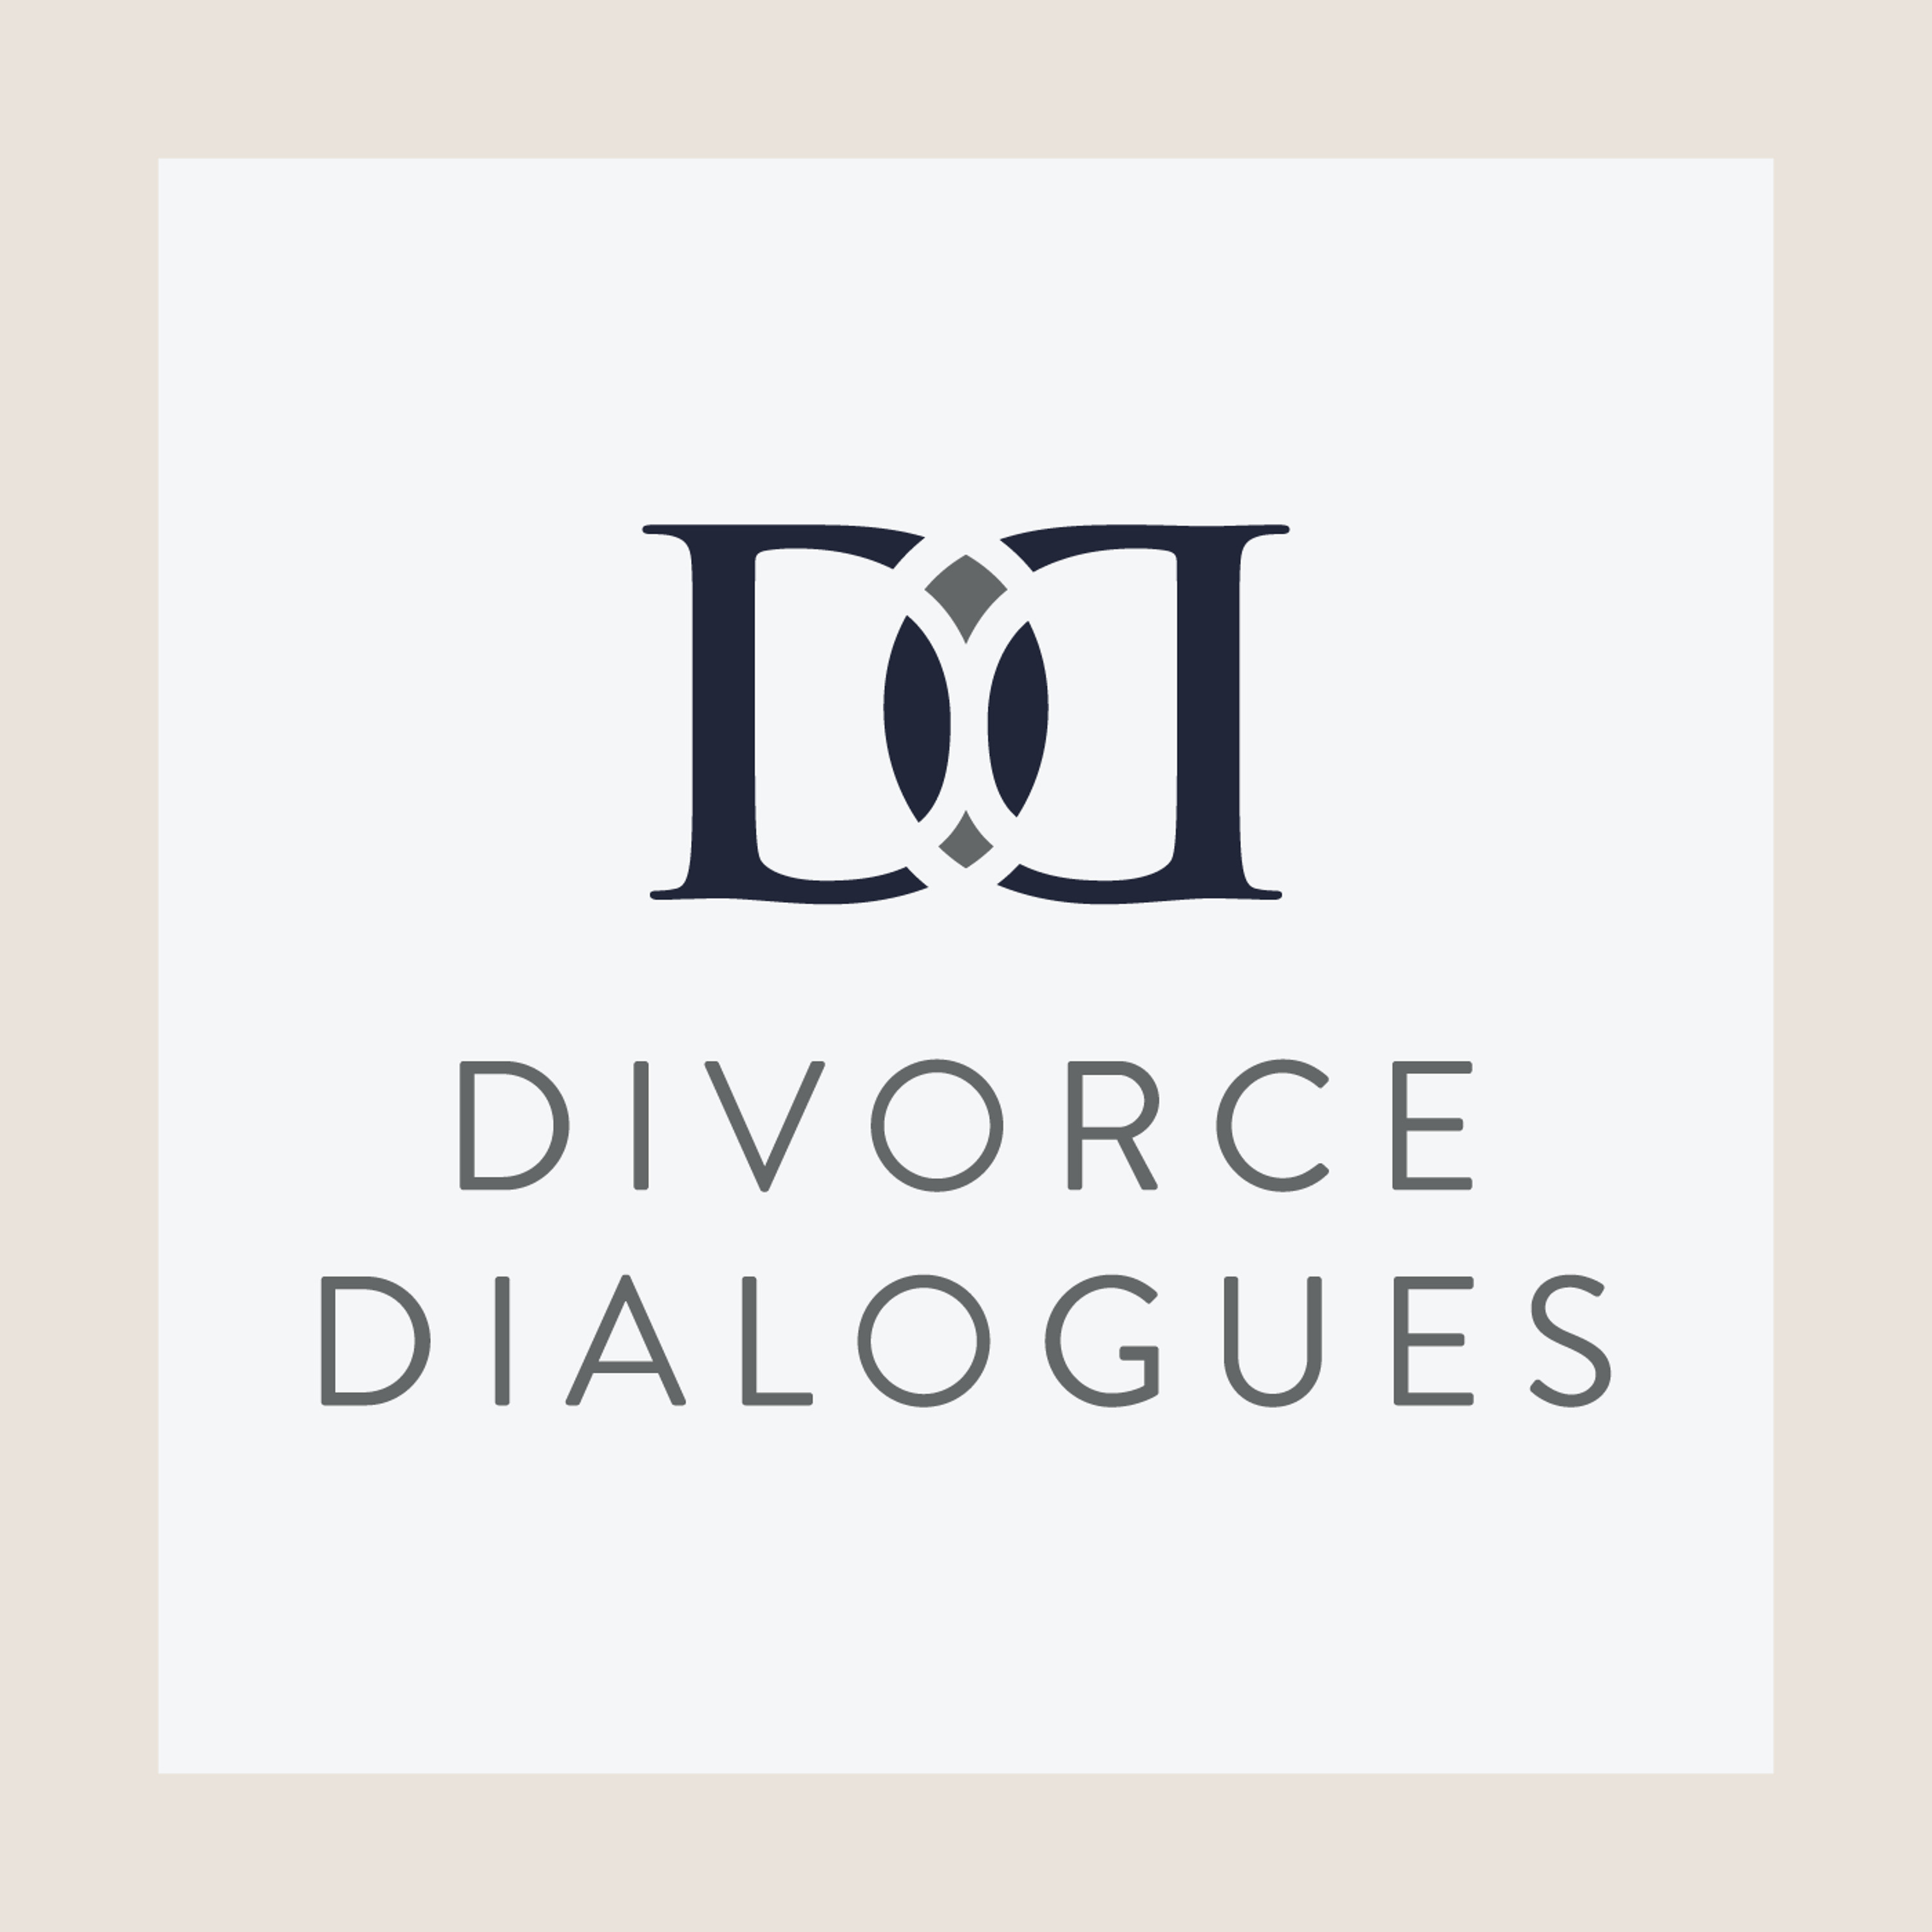 Divorce Dialogues - A Humorous Look at the Divorce and Recovery Process with Kevin Cotter